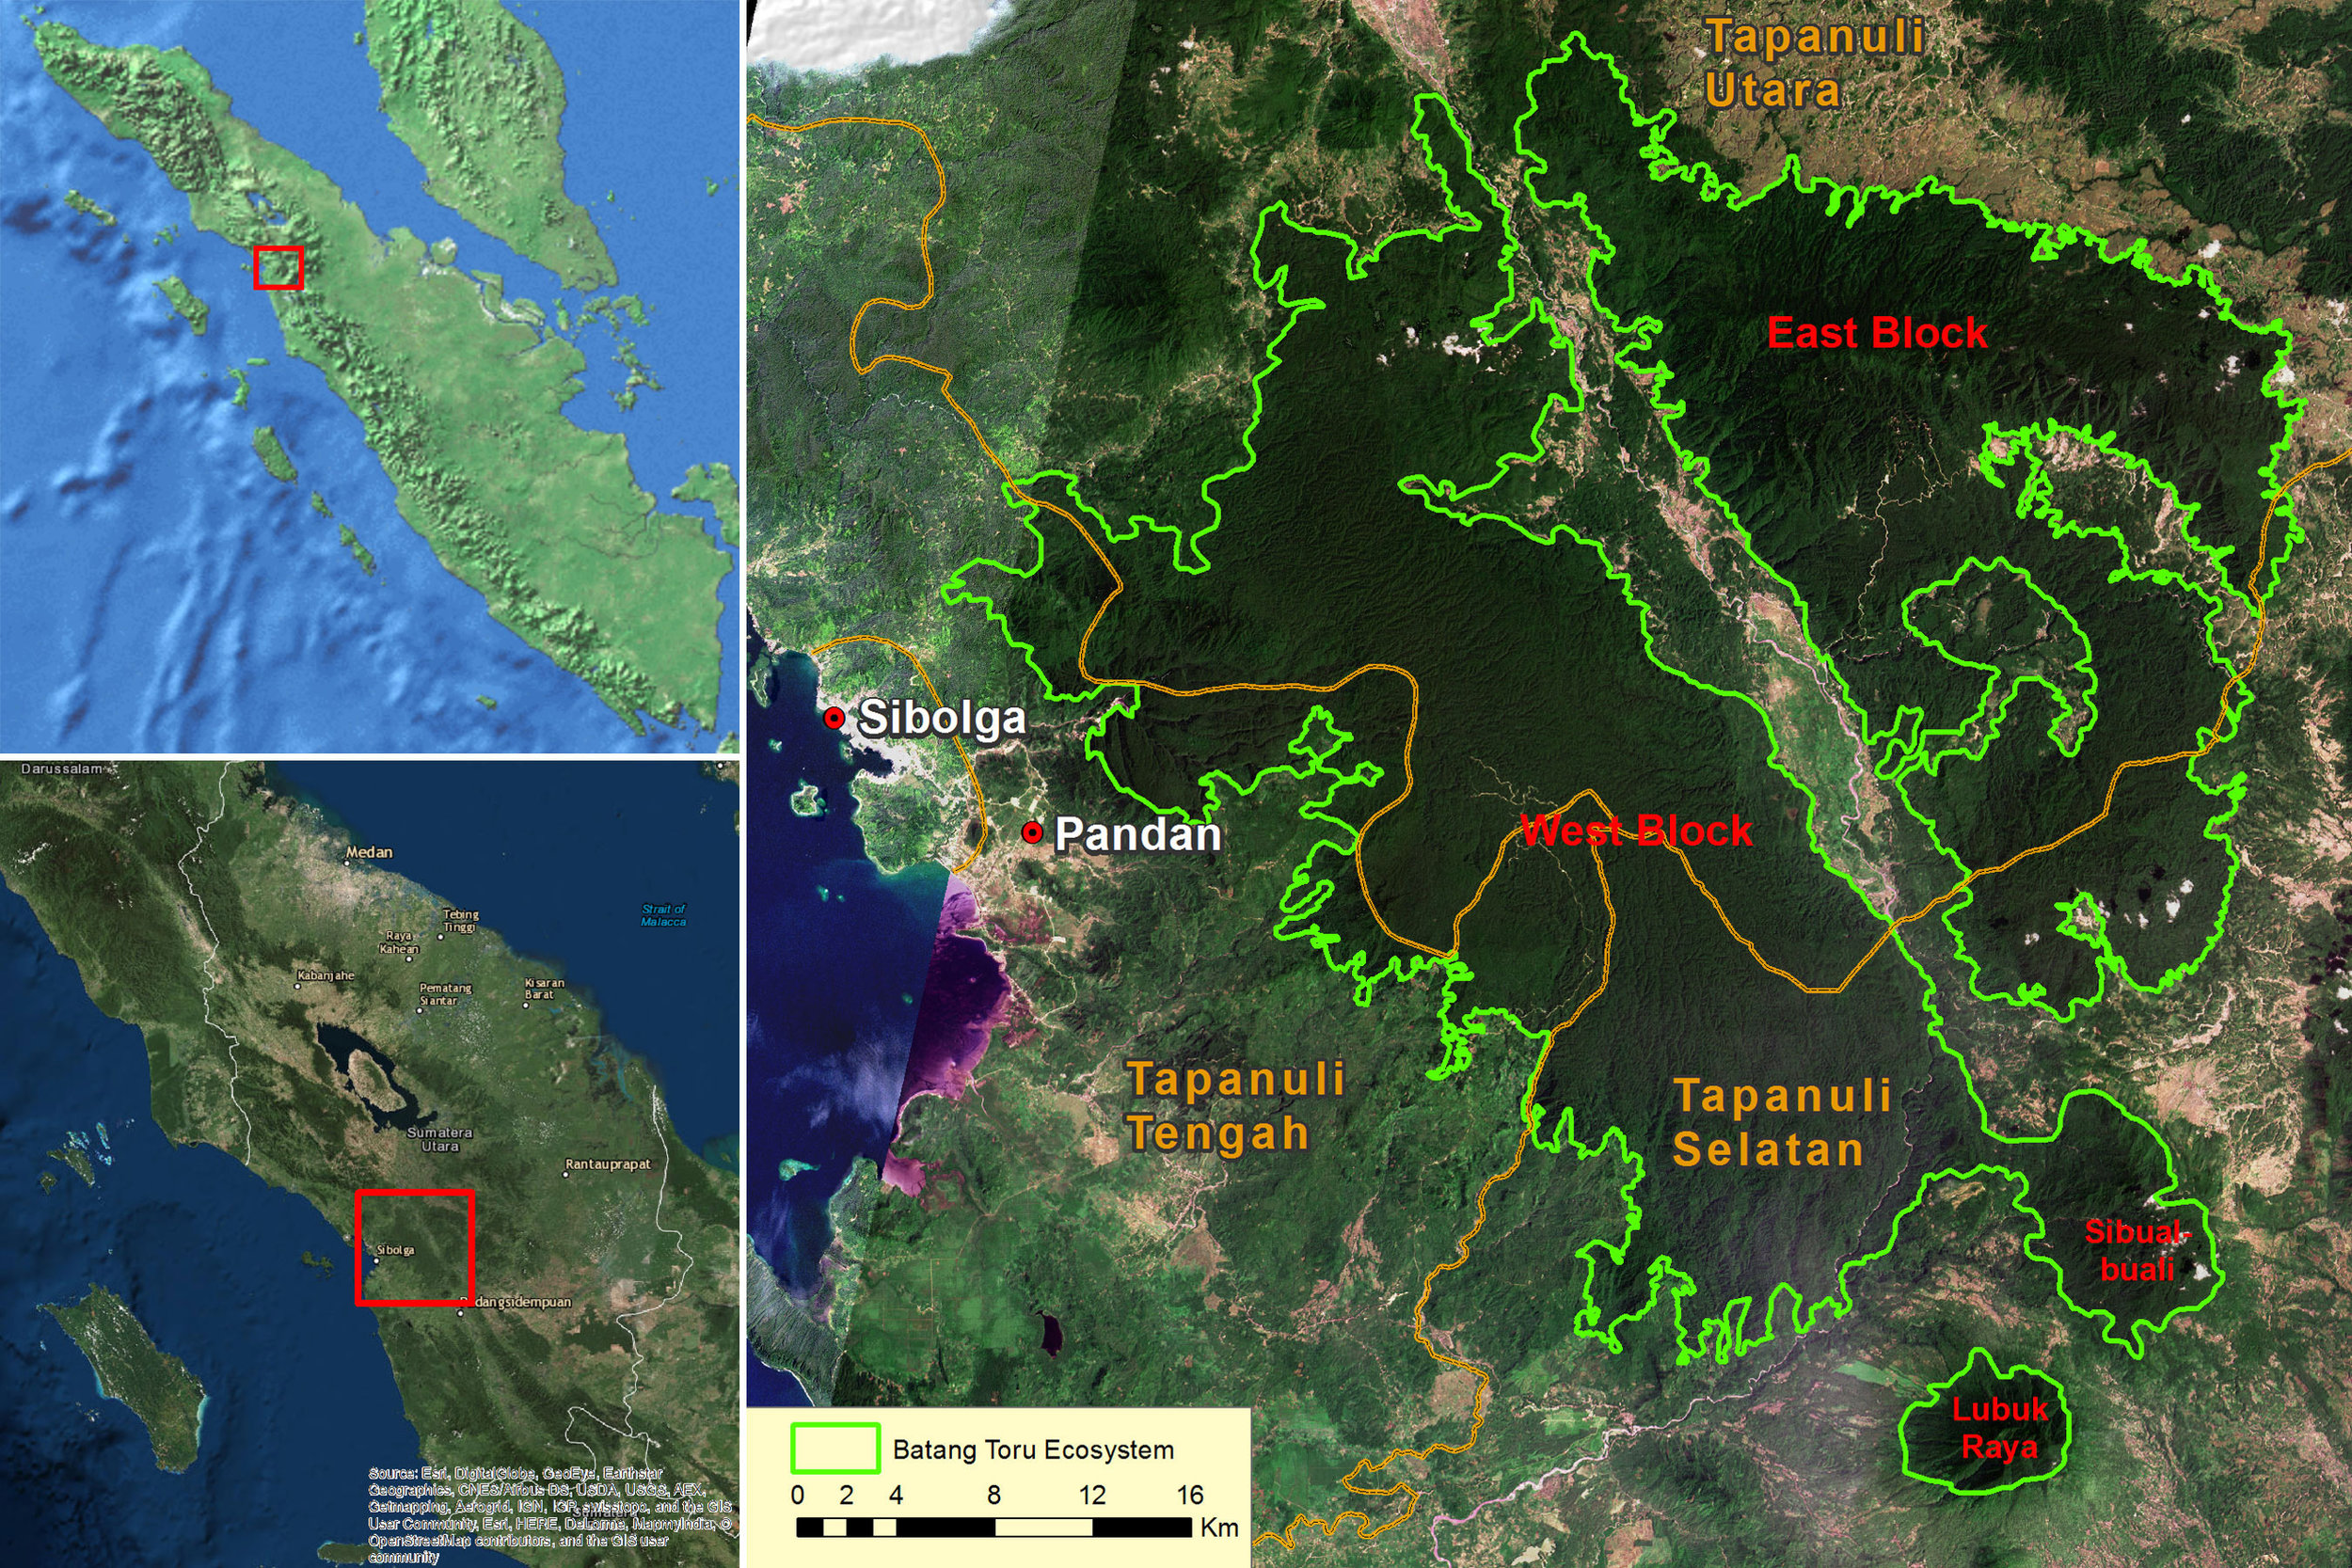 Map of Batang Toru Ecosystem, fragmented forest sections shown in orange.